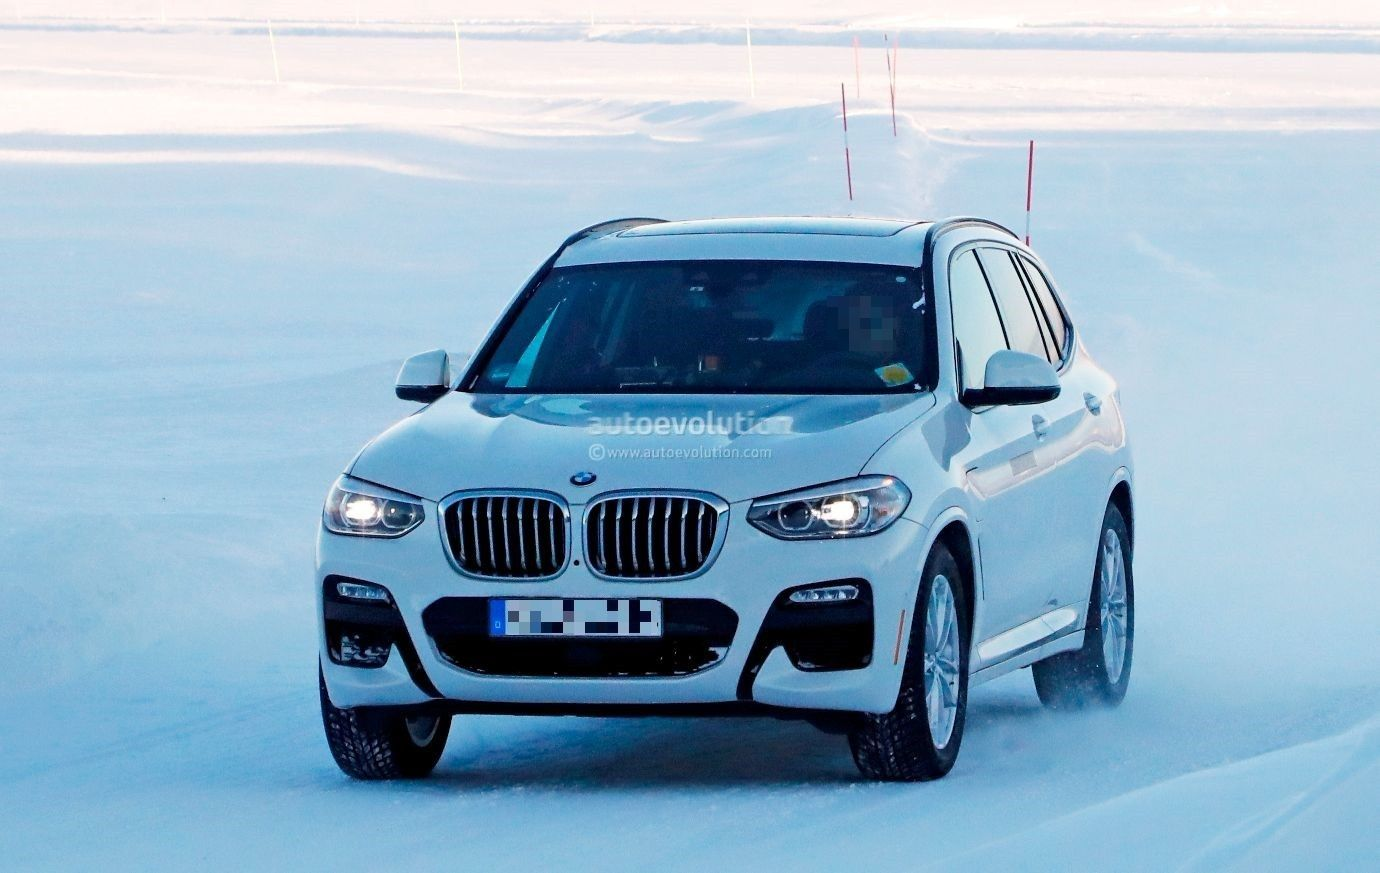 The 2020 Bmw Ix3 Is Validated This Is The Fully Electric Crossover Which Will At First Concern The Chinese Market We Make Certain That Some Sort Of A Test On